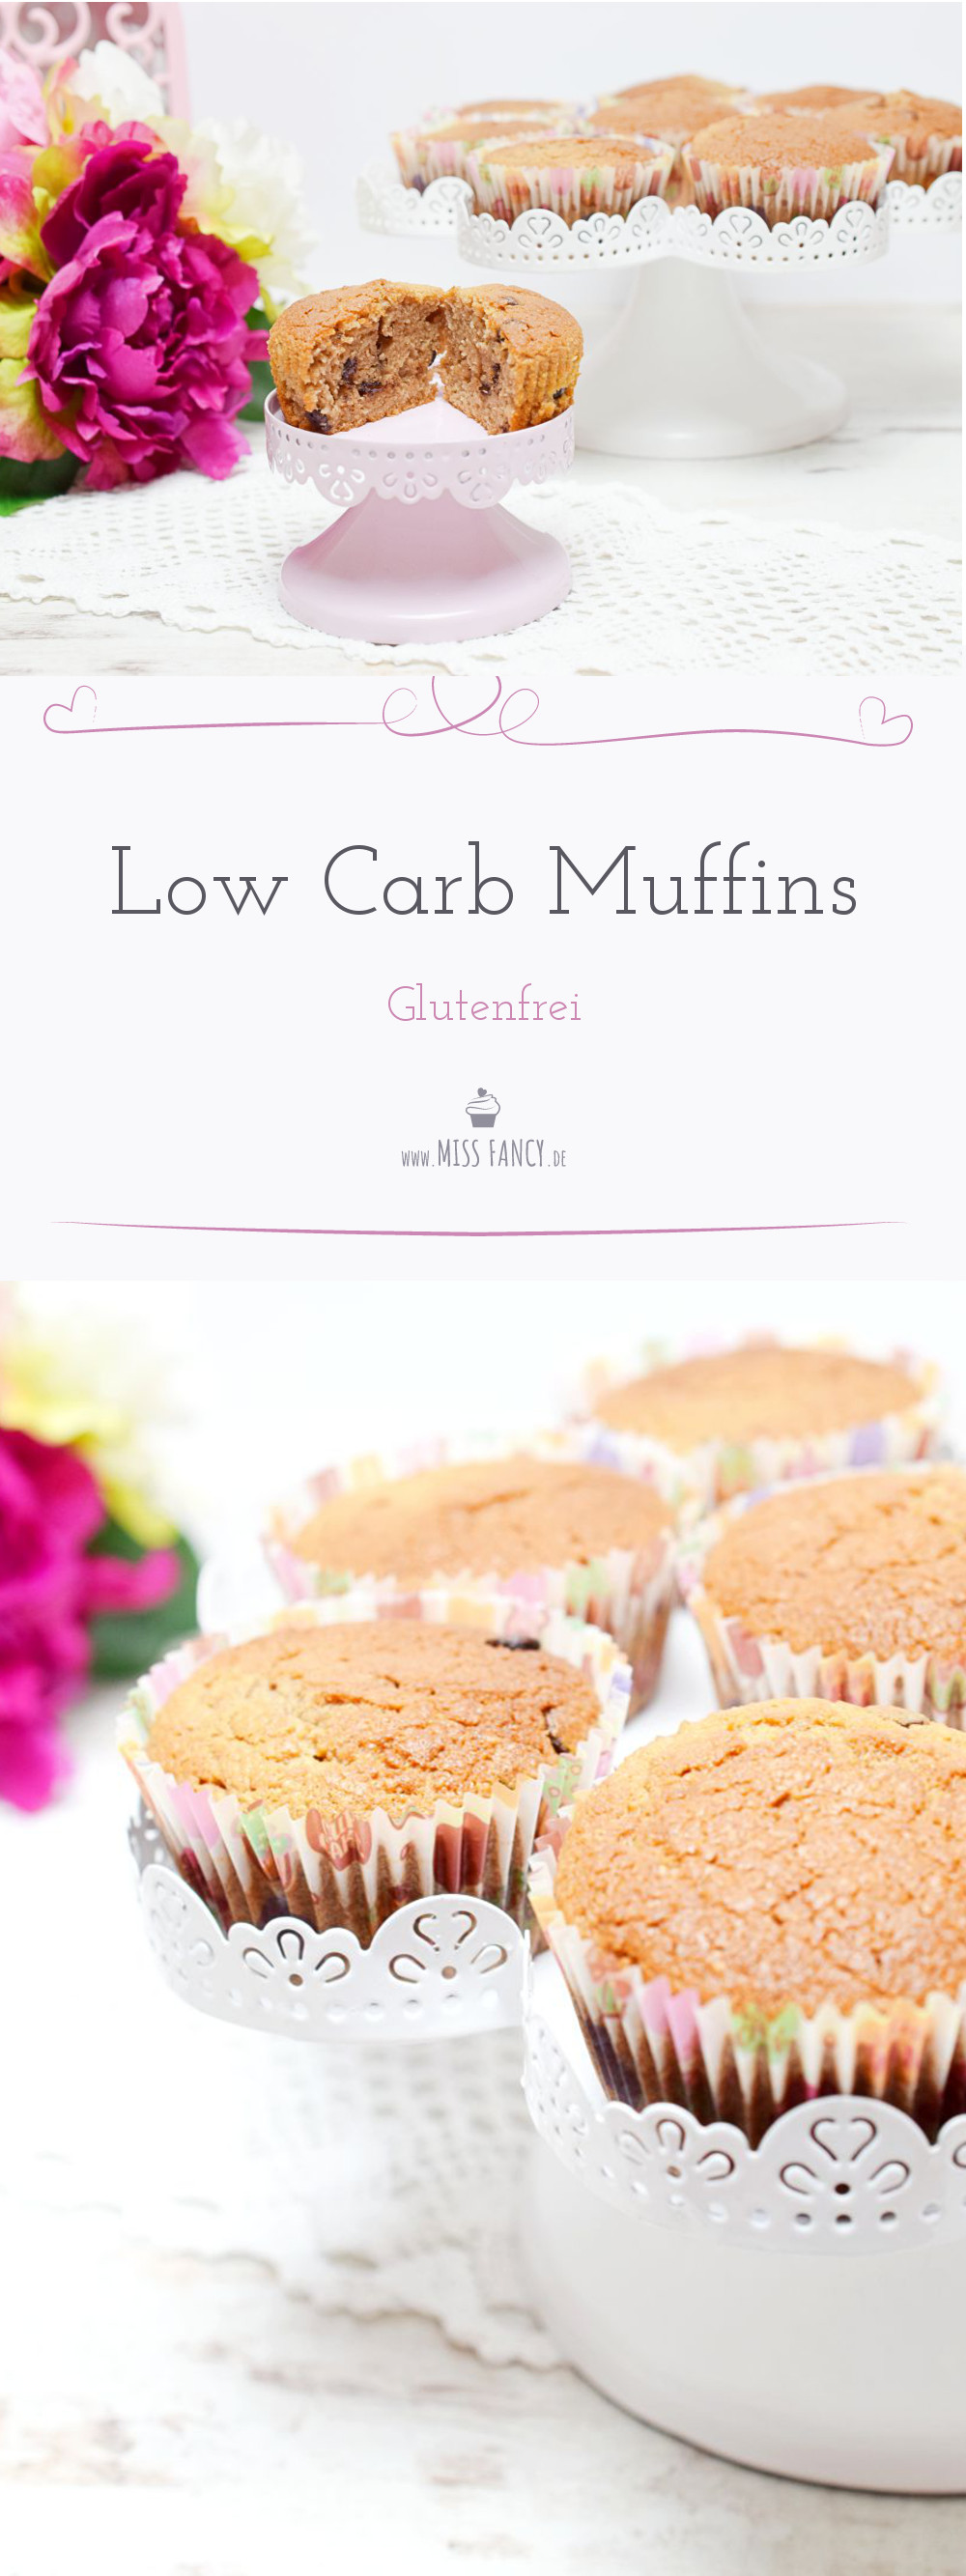 Low Carb Muffins - Glutenfrei